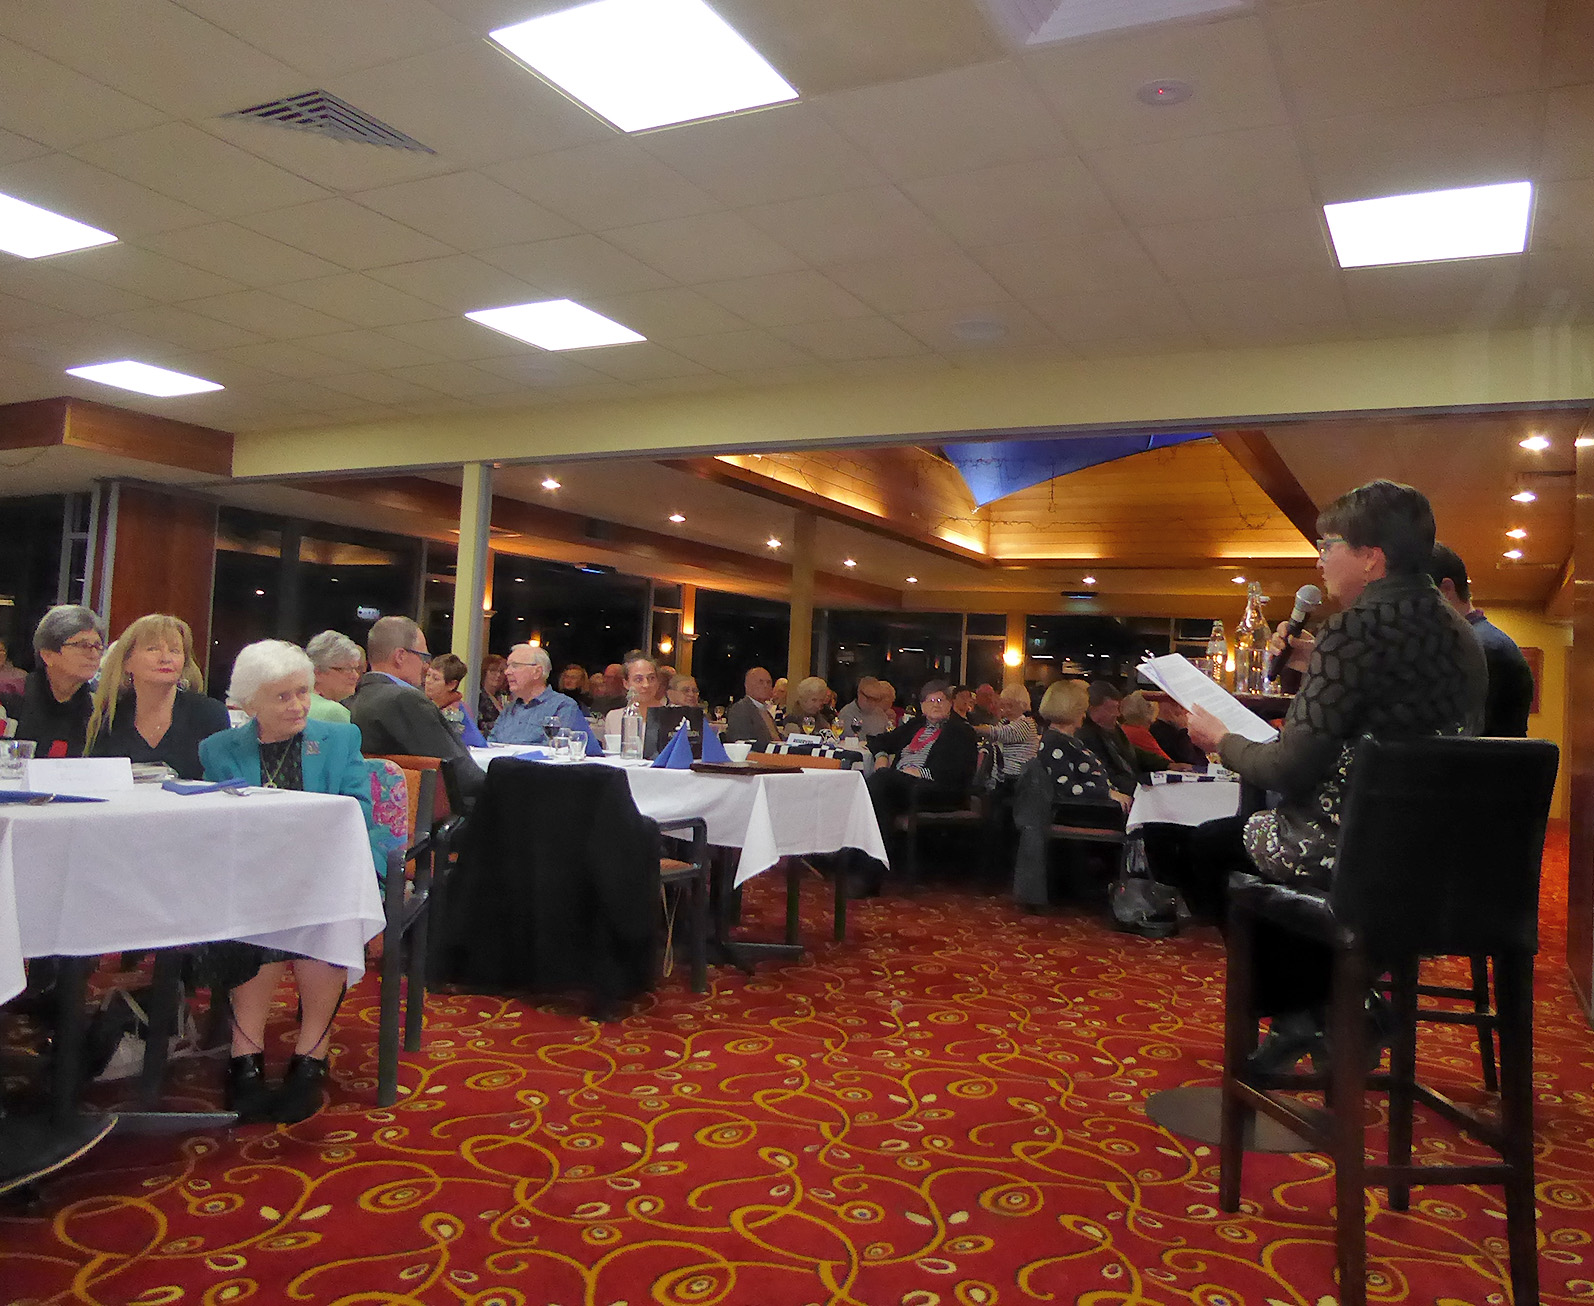 Annual DInner at Aireys Inlet Uniting Church